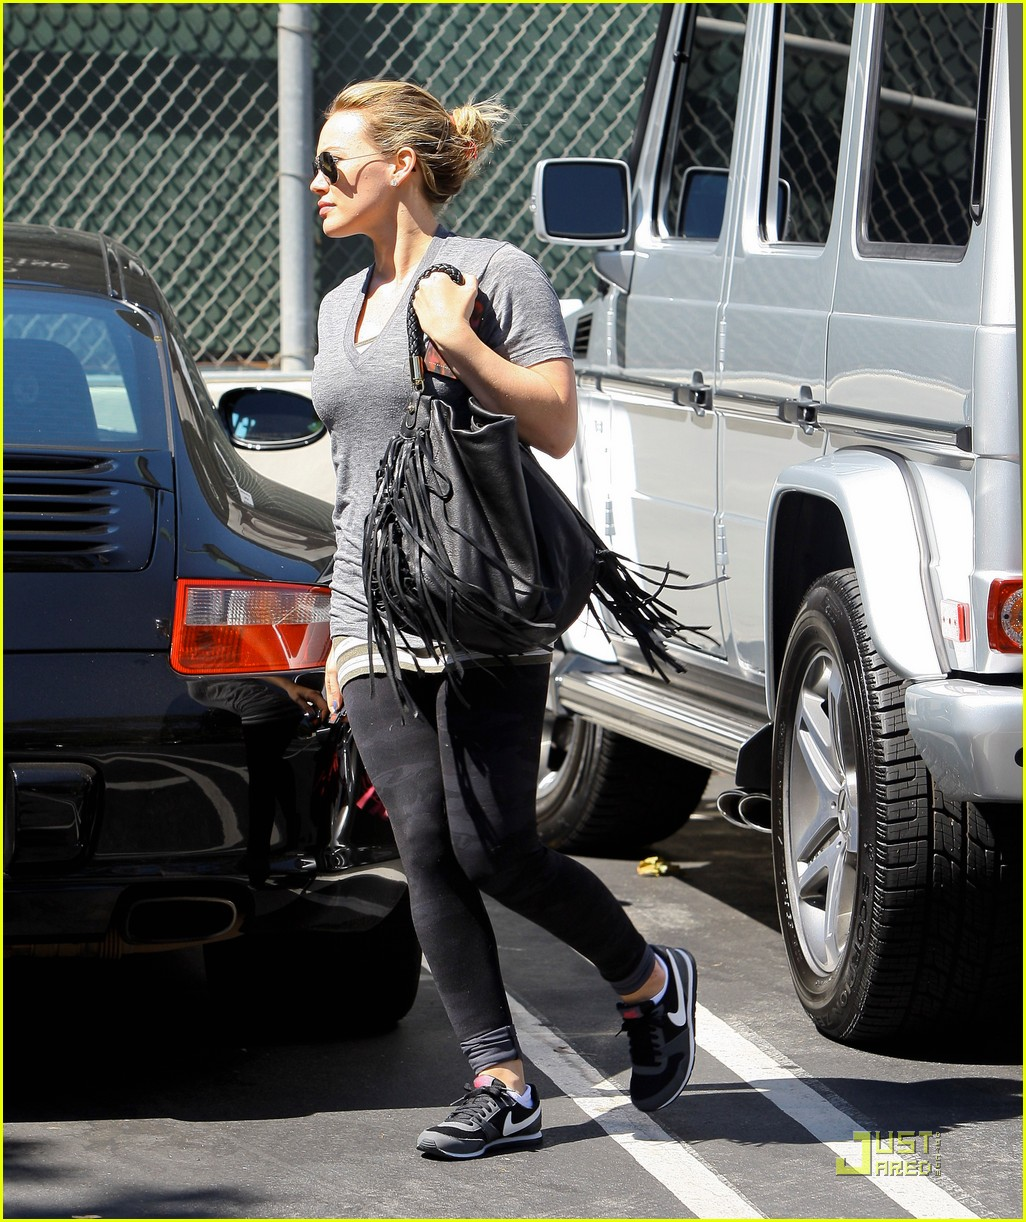 hilary haylie duff gym 10